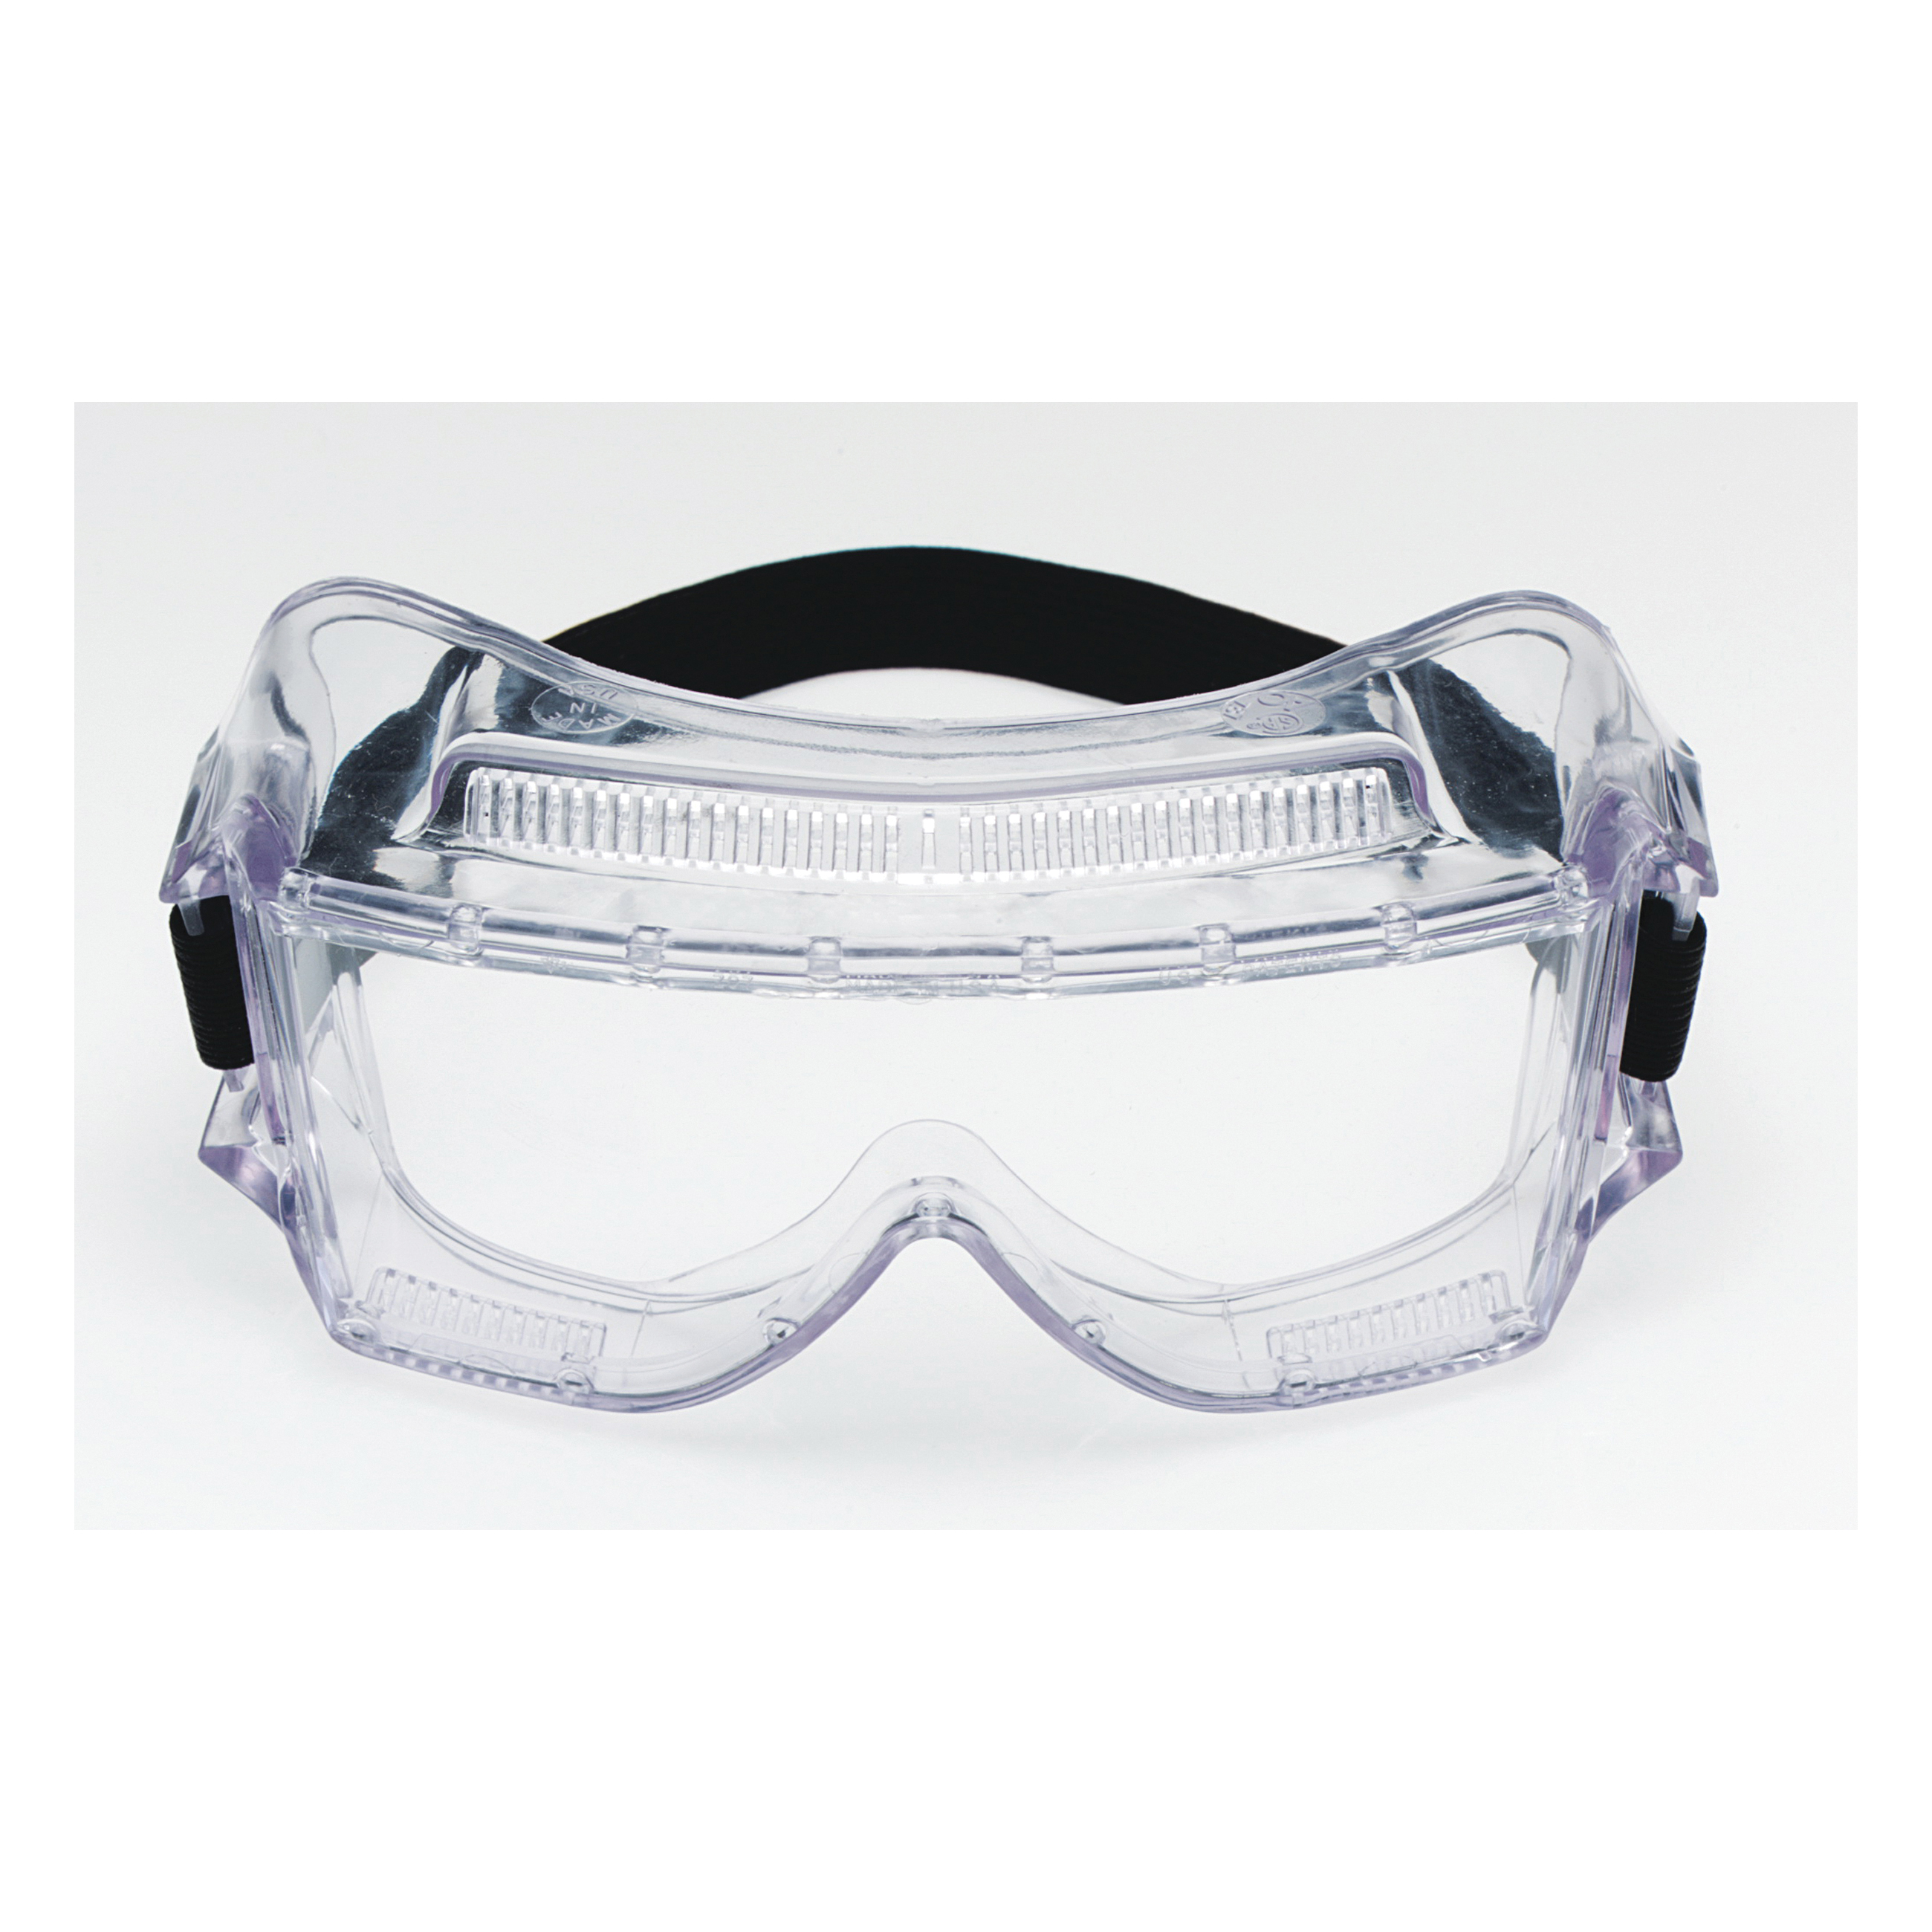 3M™ Centurion™ 078371-62388 40301-00000-10 Standard Value Safety Goggles, Anti-Fog/Impact Resistant/UV-Protective Clear Polycarbonate Lens, 99.9% % UV Protection, Elastic Strap, ANSI Z87.1-2003, CSA Z94.3-2007